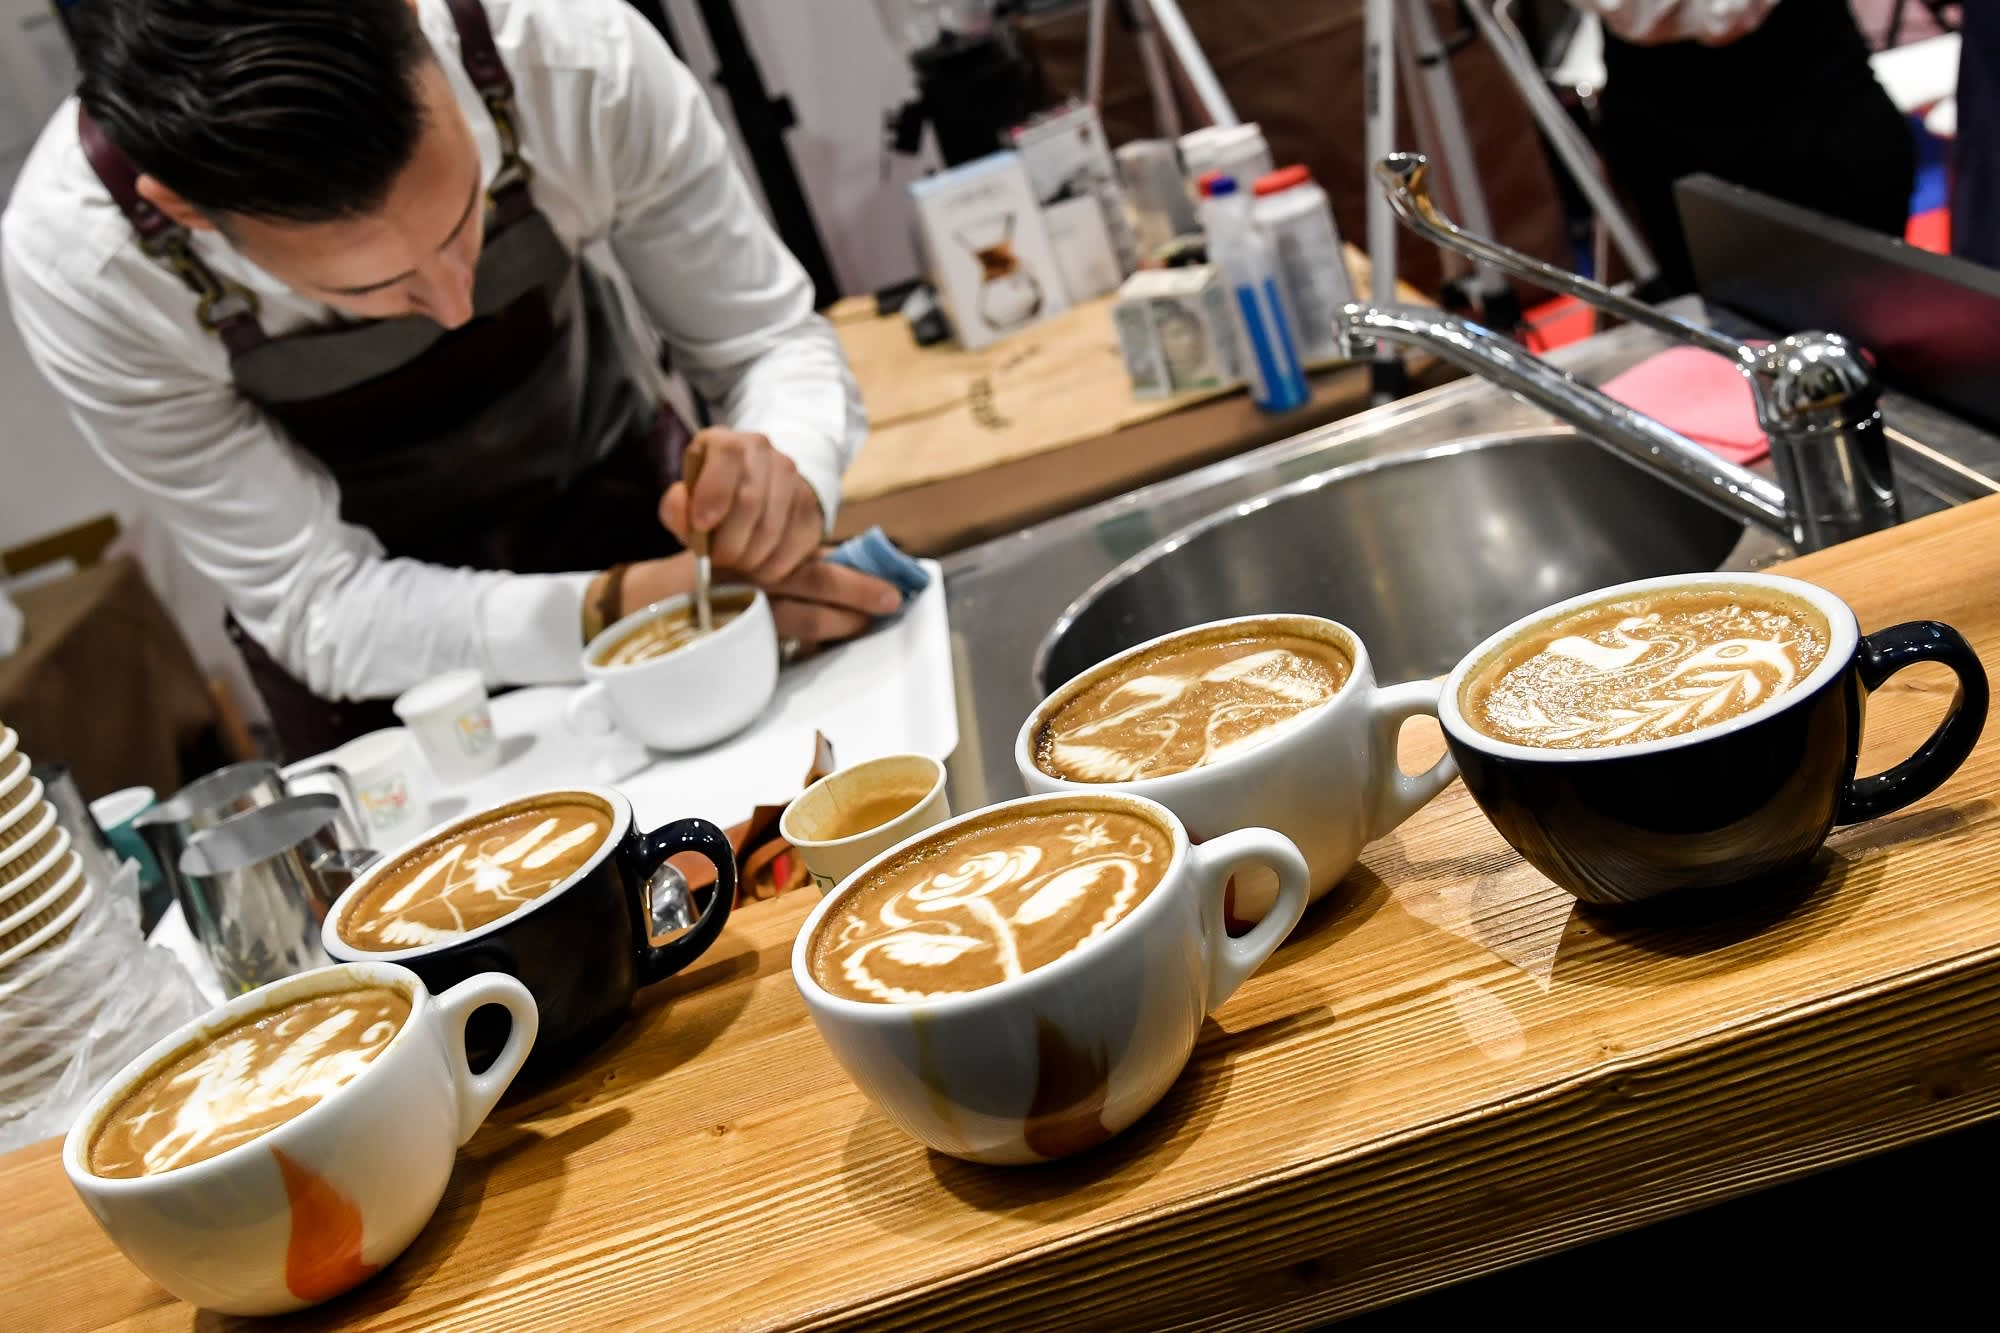 Drinking coffee could help you live longer, study says